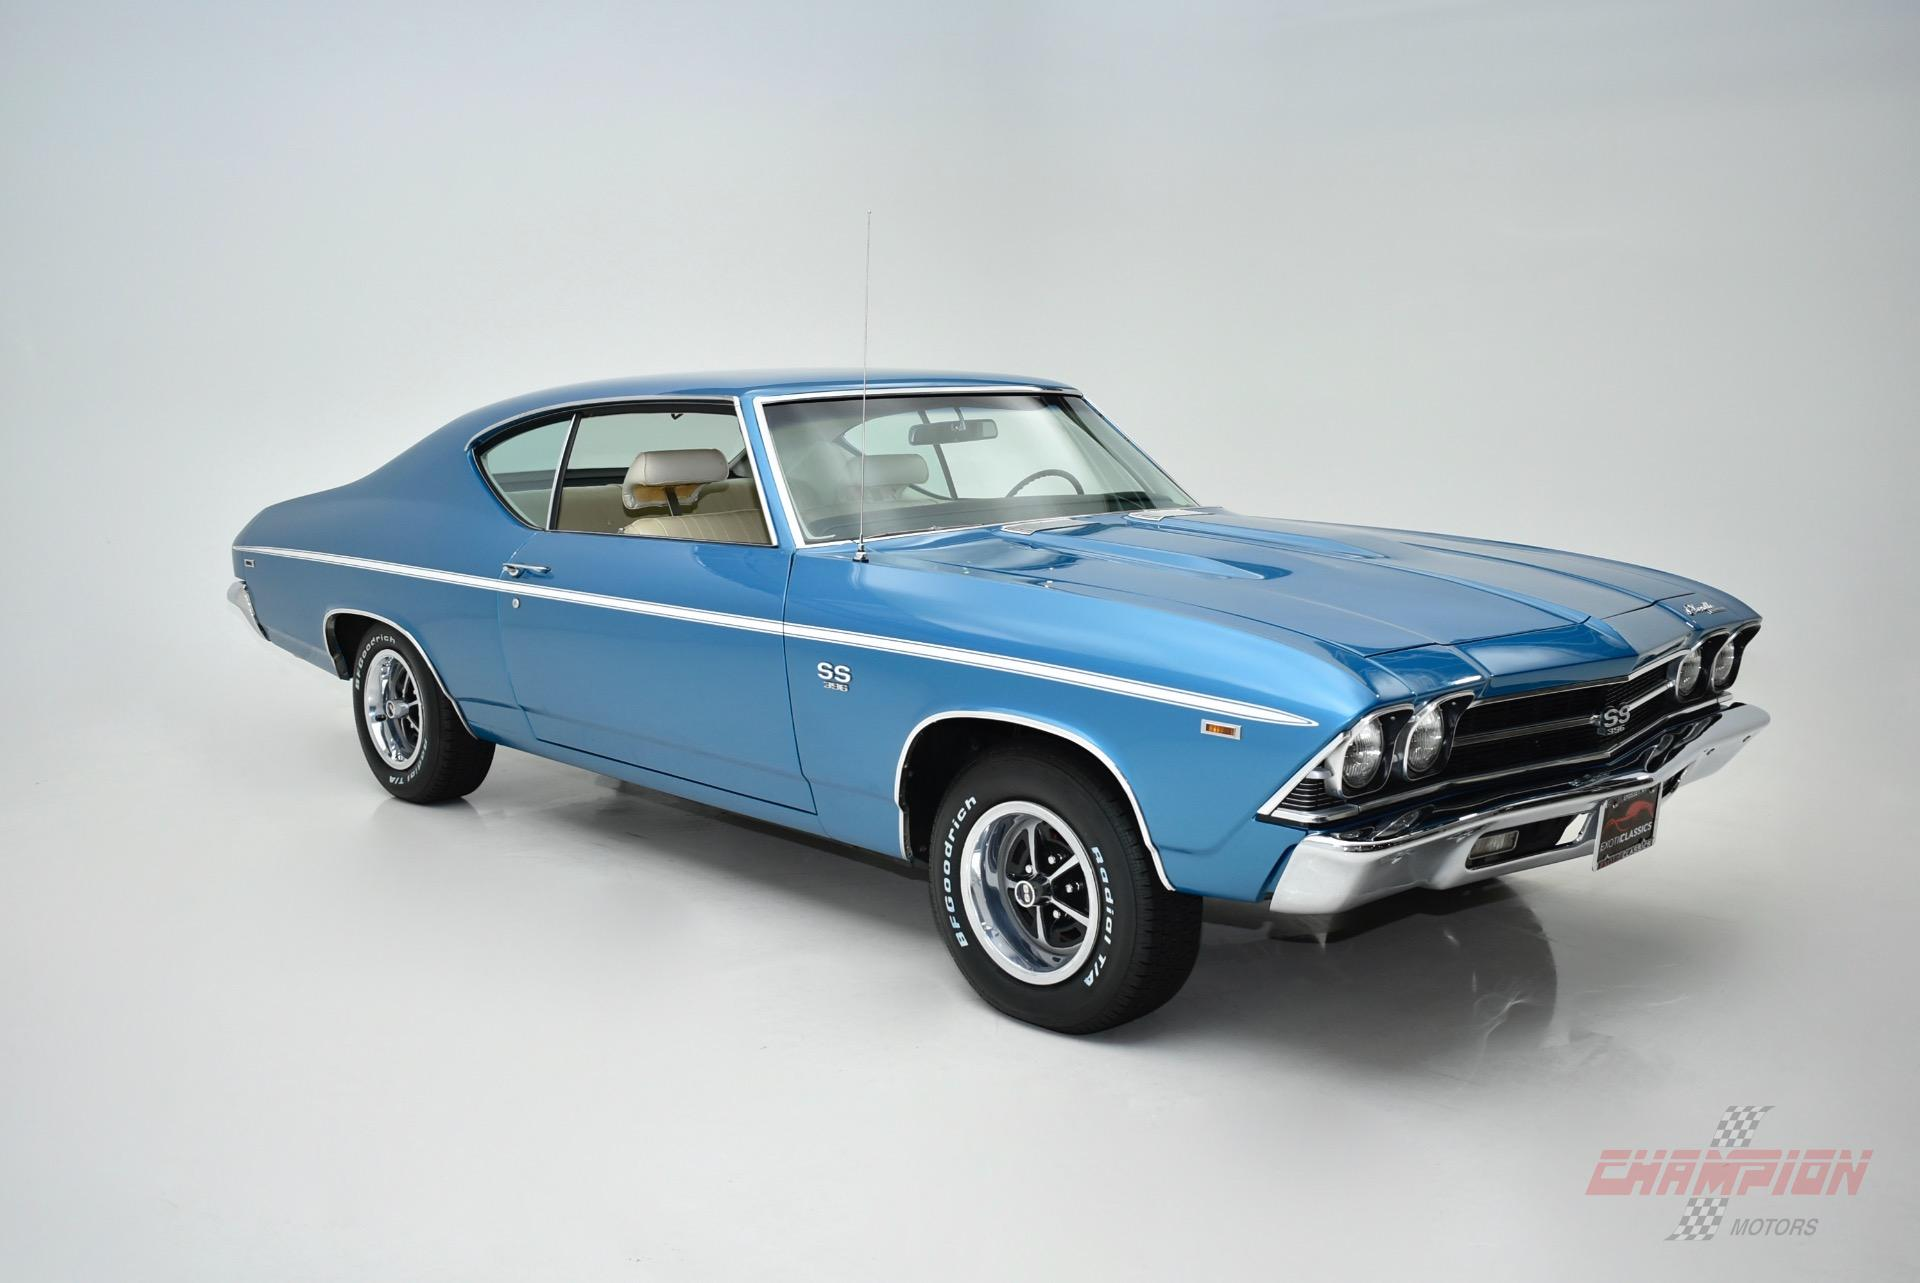 1969 Chevrolet Chevelle SS396 L78   Exotic Classic Car Dealership     1969 Chevrolet Chevelle SS396 L78